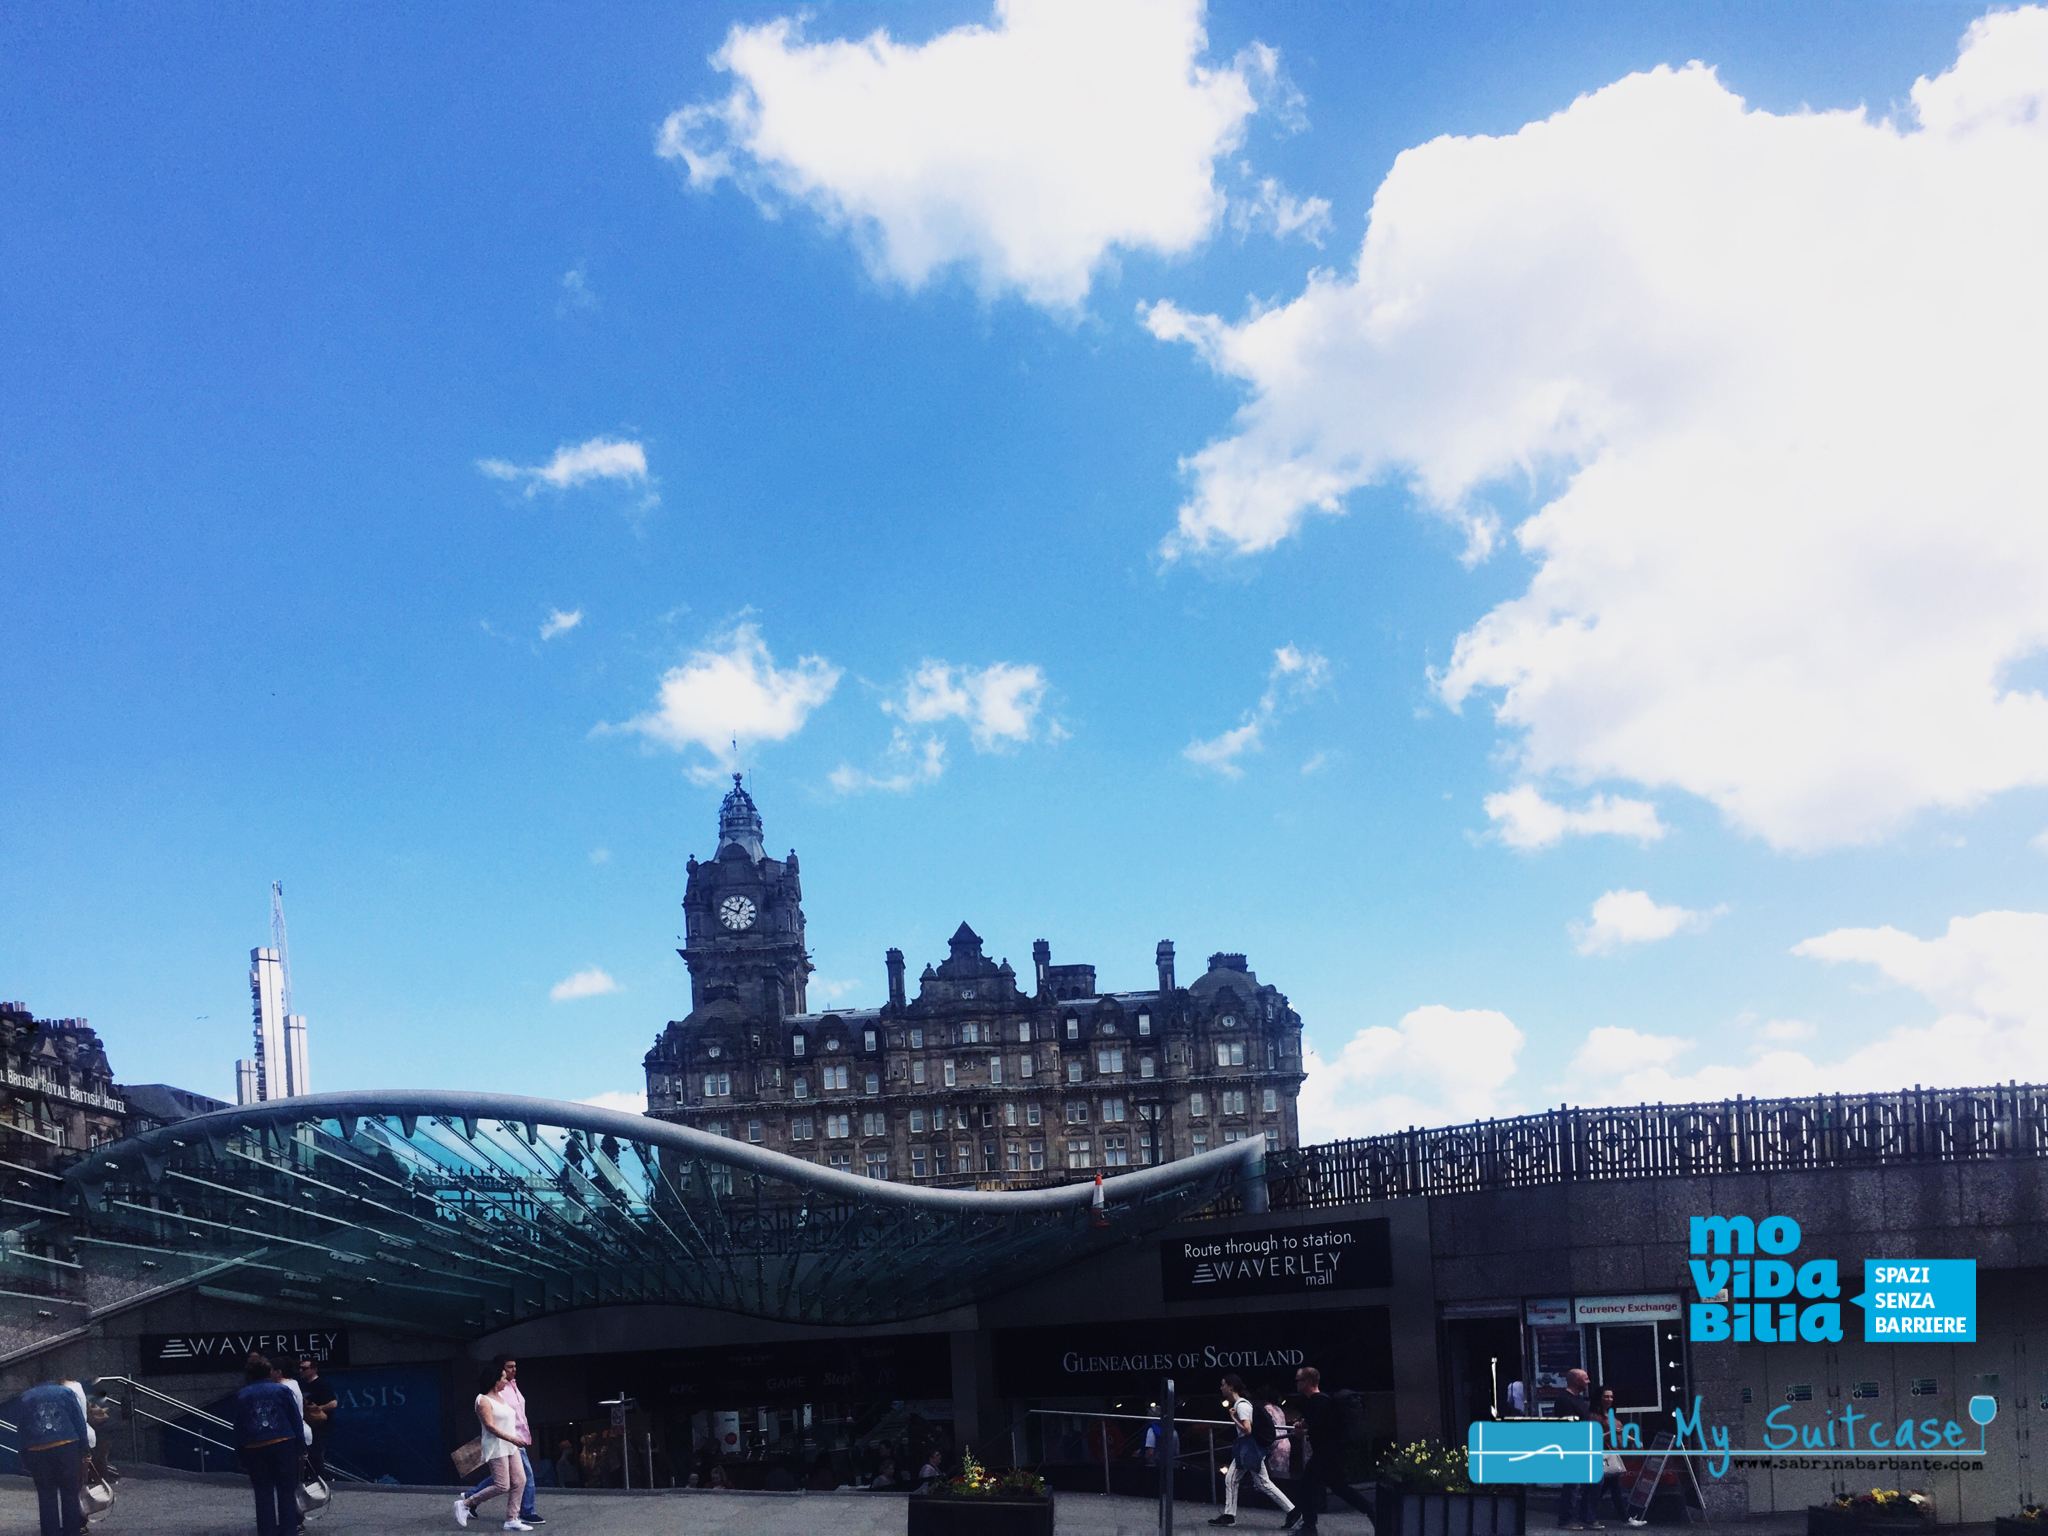 Waverly station - edimburgo accessibile